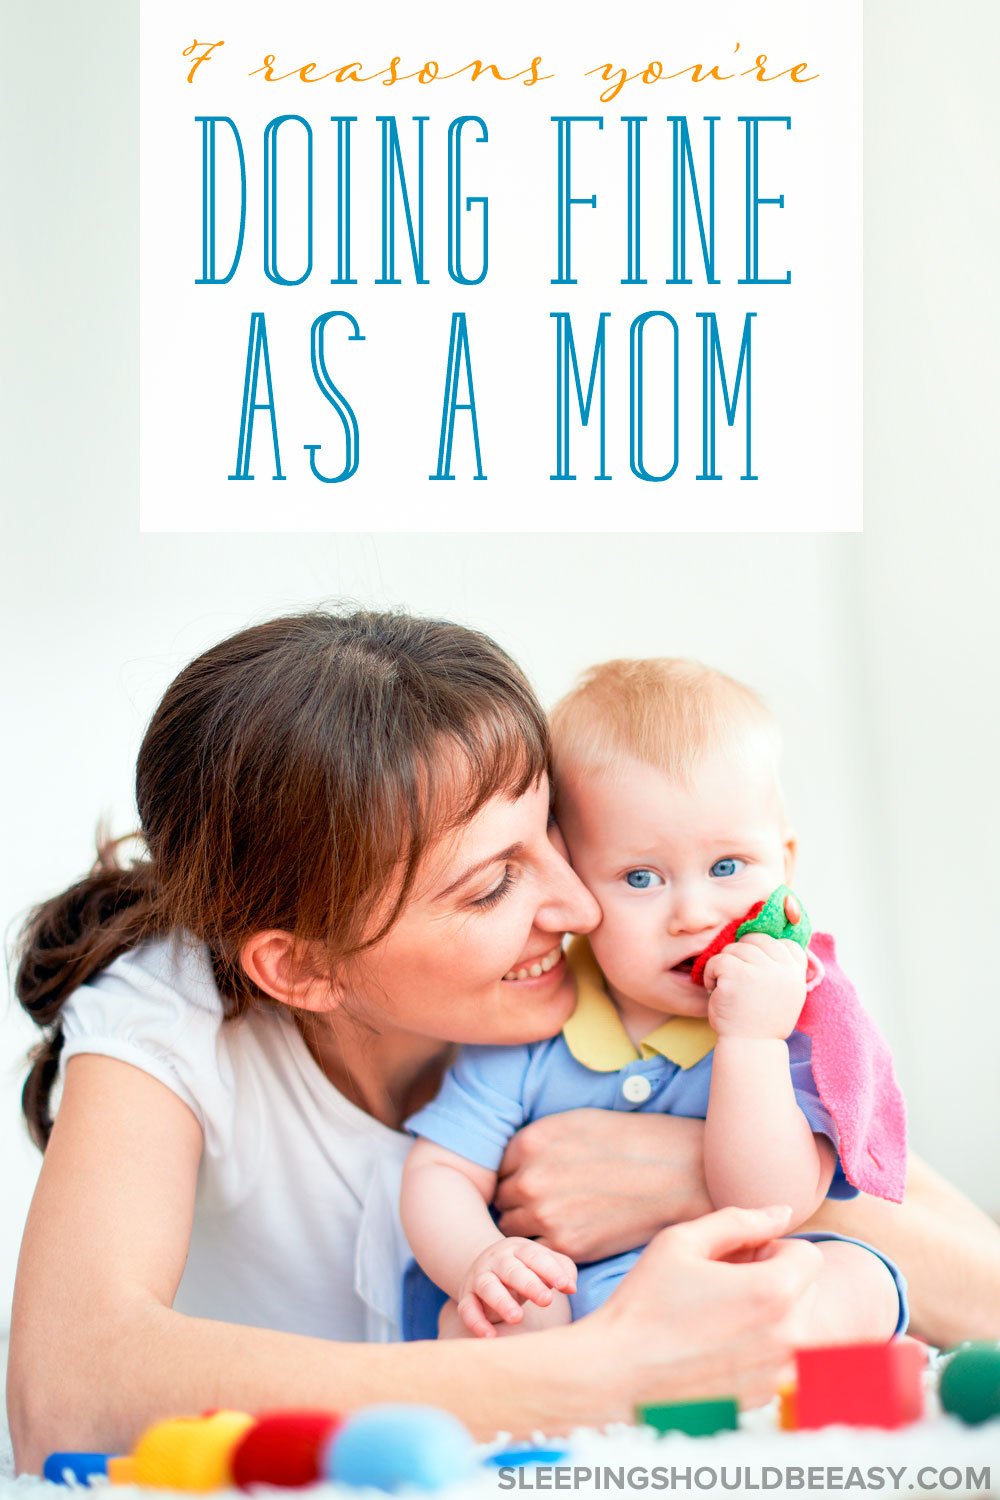 We moms often wonder whether we're doing enough for our kids and feel guilty we're not. Check out these 7 reasons you're doing fine as a mom.